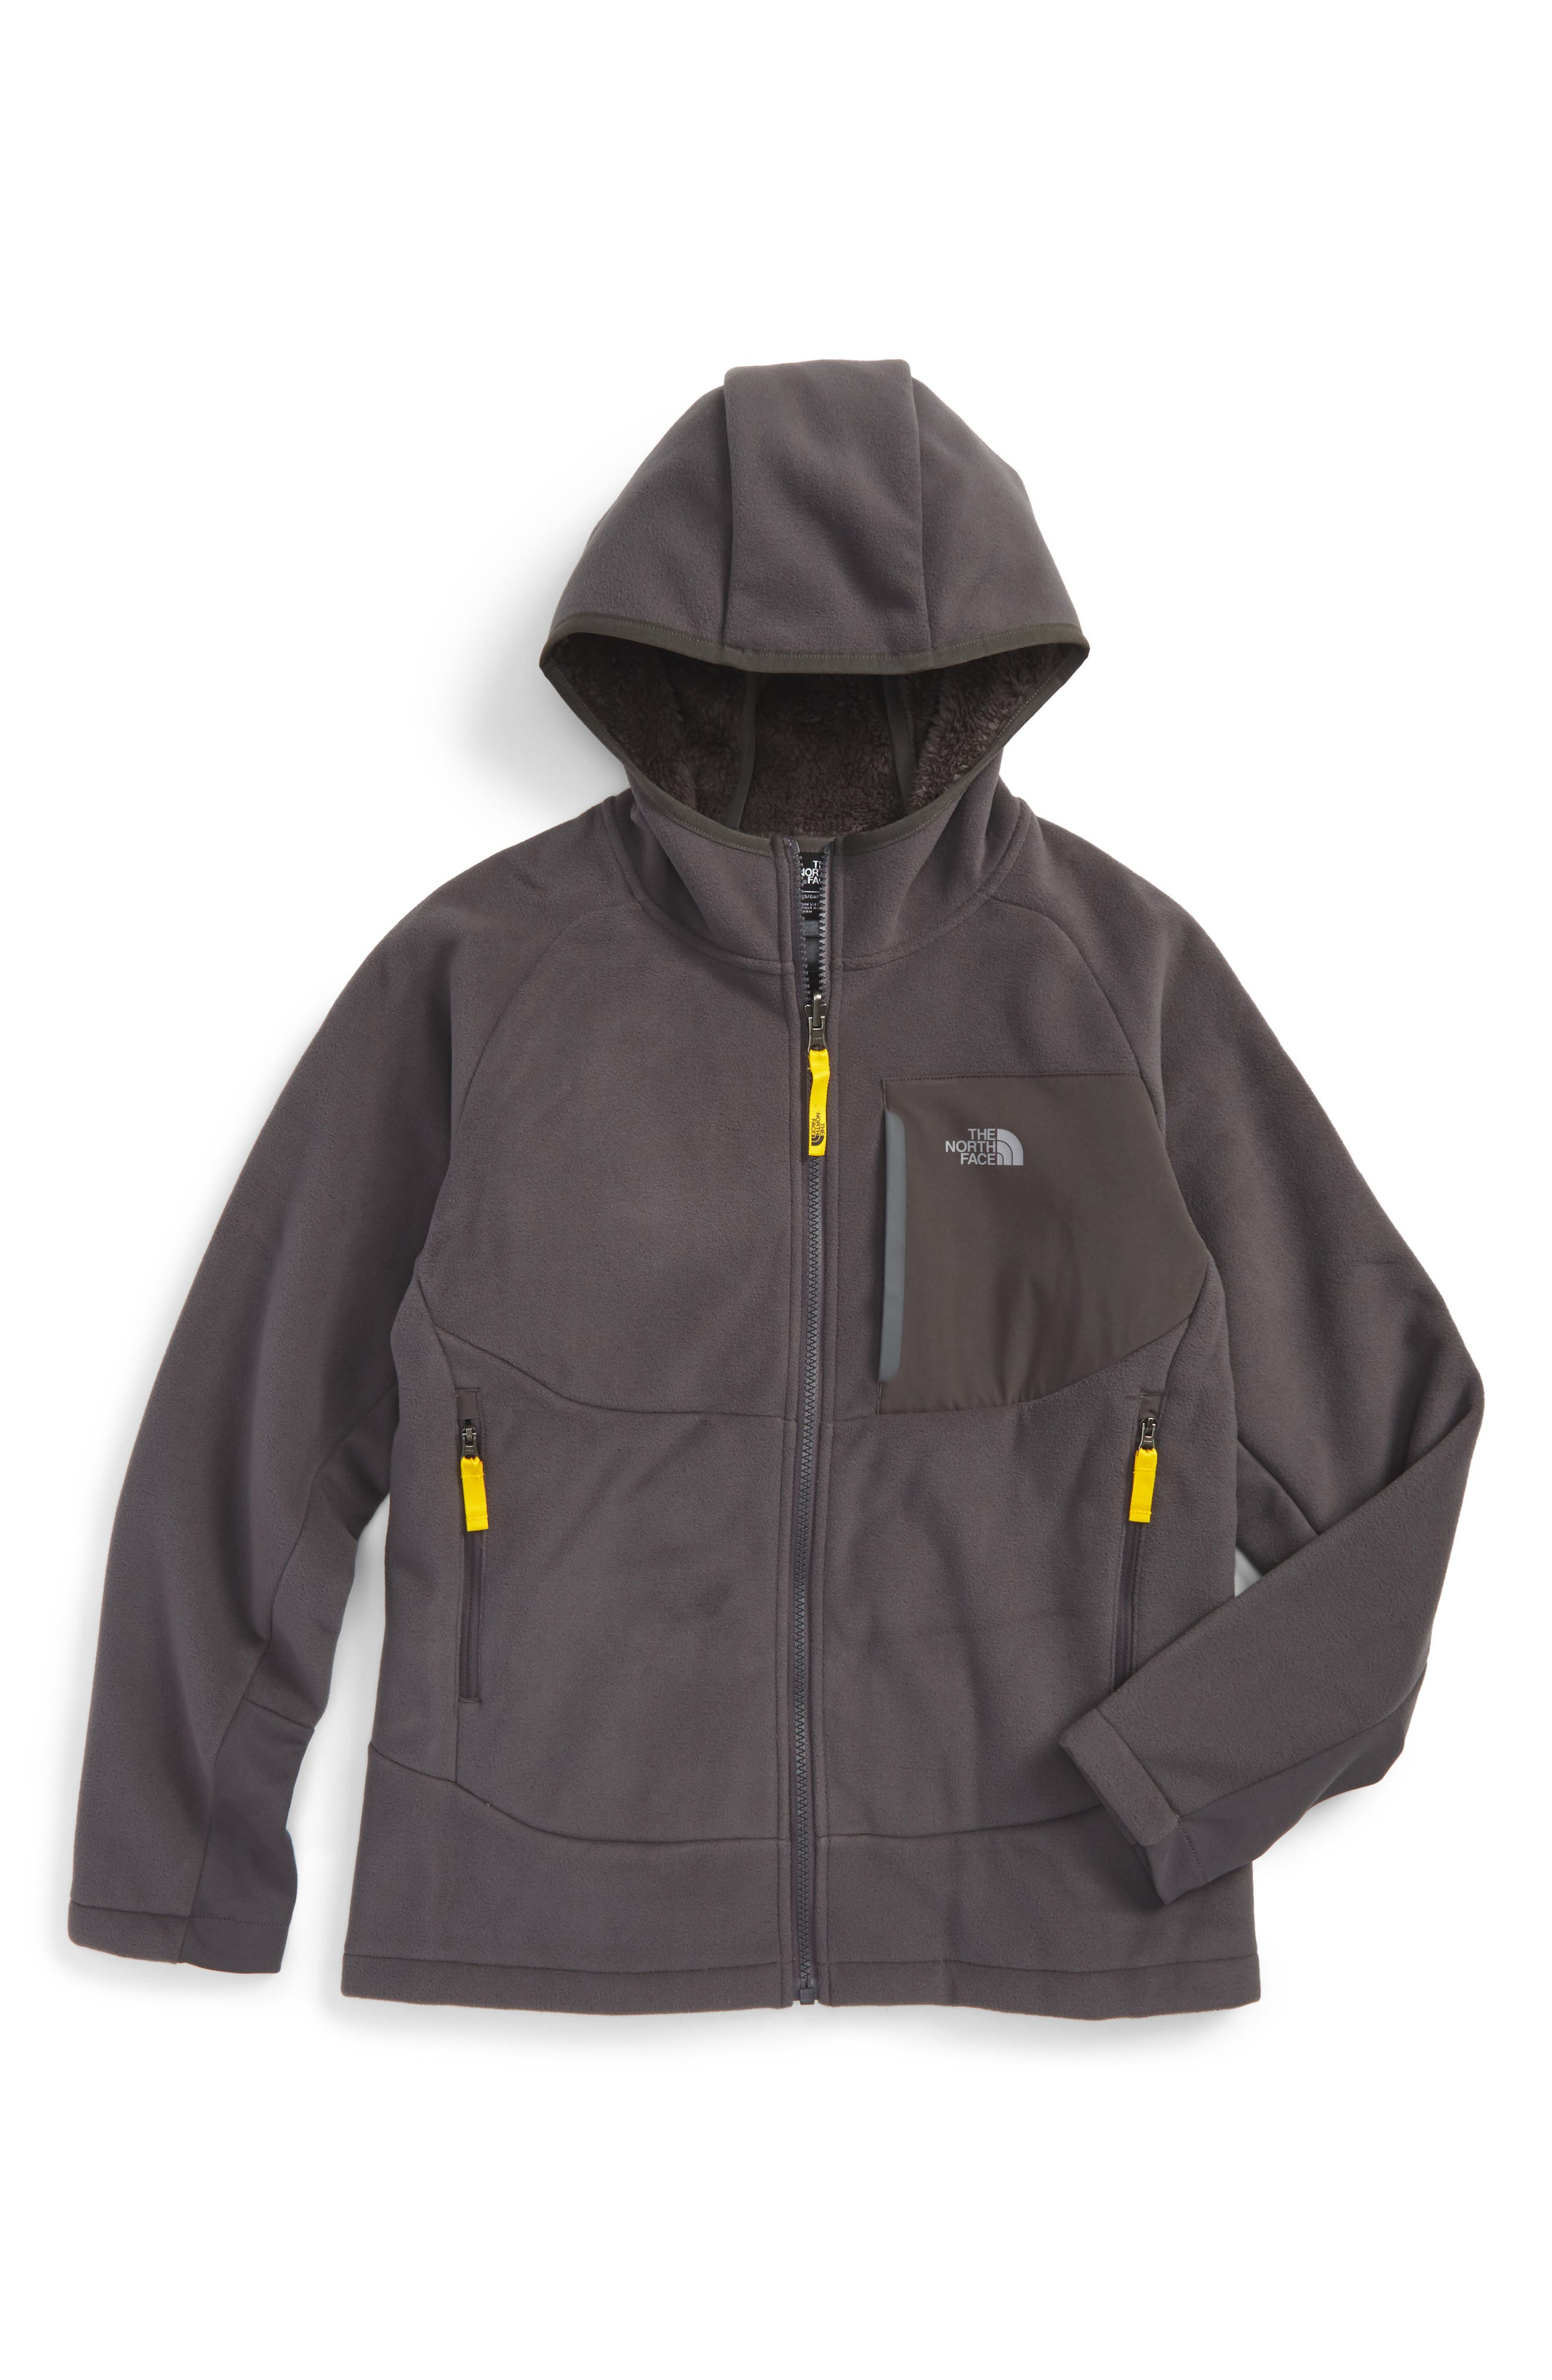 'Chimborazo' Hoodie,                             Main thumbnail 1, color,                             Graphite Grey/ Canary Yellow